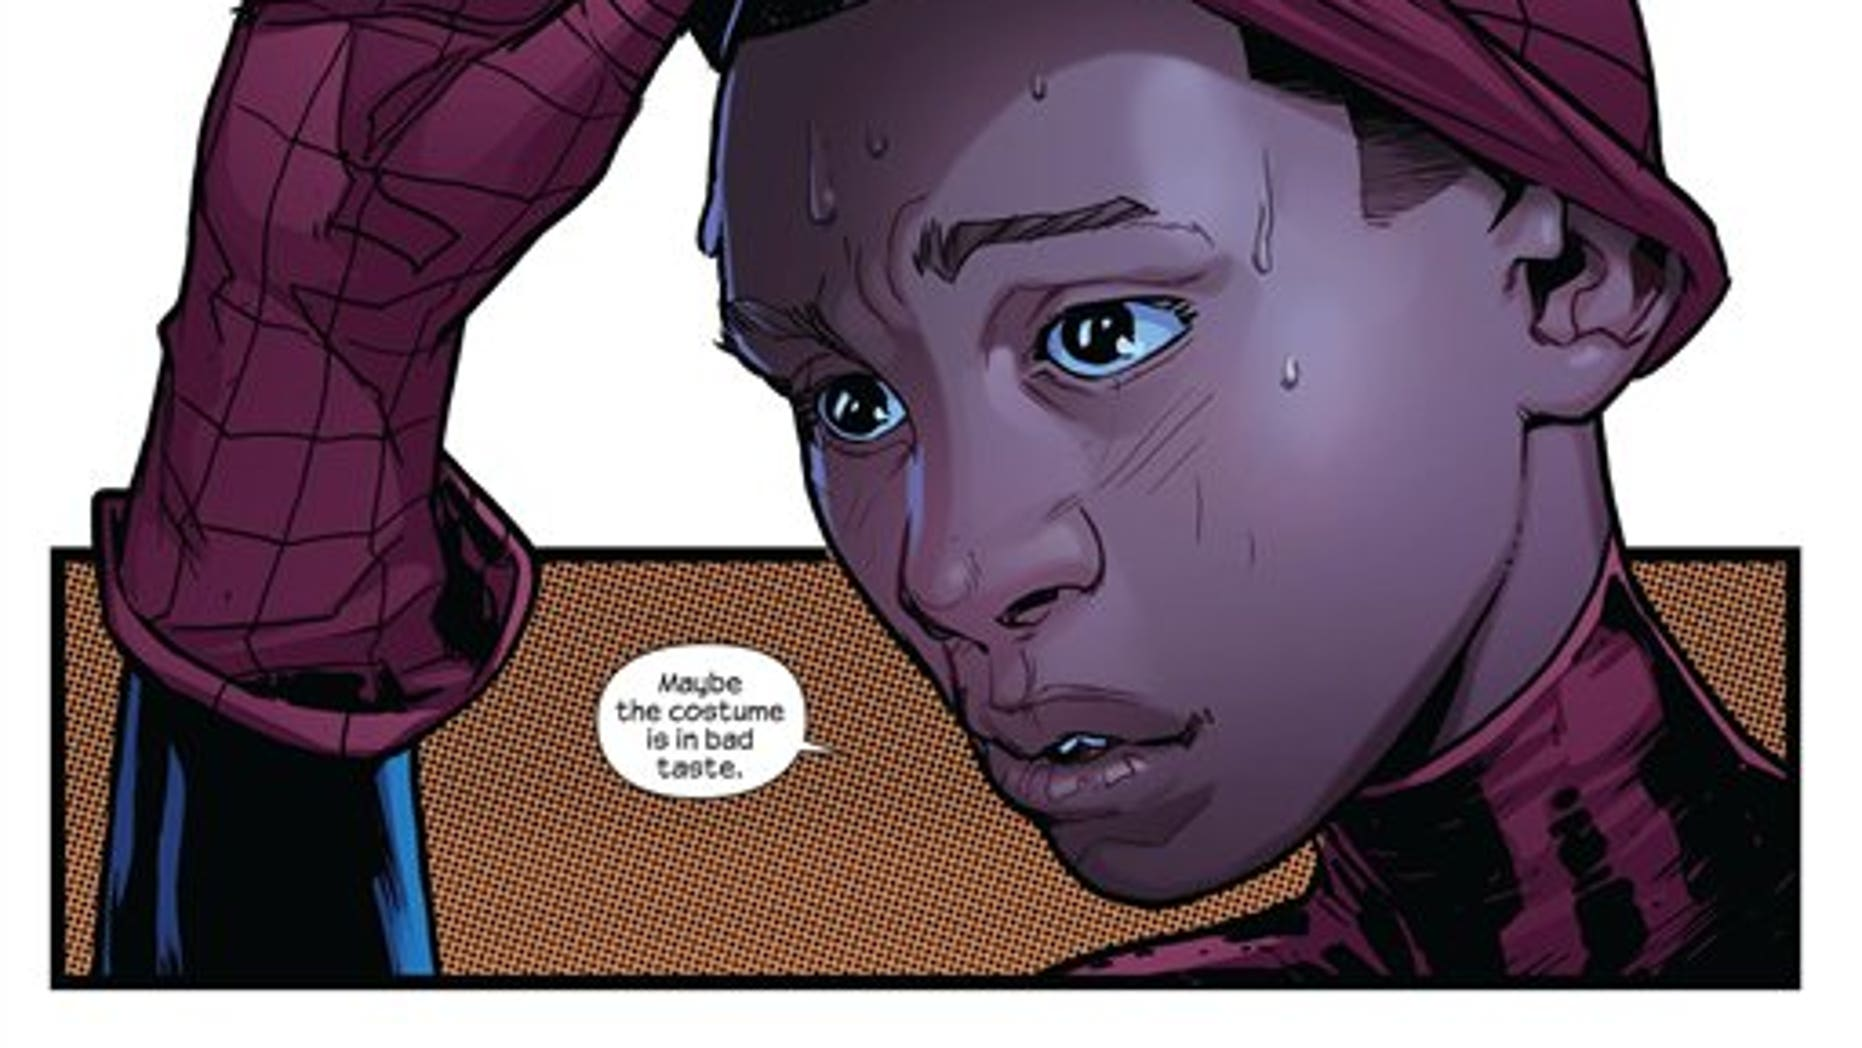 In the wake of the death of Peter Parker, Ultimate Spider-Man is still slinging webs across Manhattan. In the fourth, and final, issue of Ultimate Fallout released on Wednesday, Aug. 3, 2011, the mantle of the wall-crawling hero has been taken on by Miles Morales, a young half-Latino, half-African American.